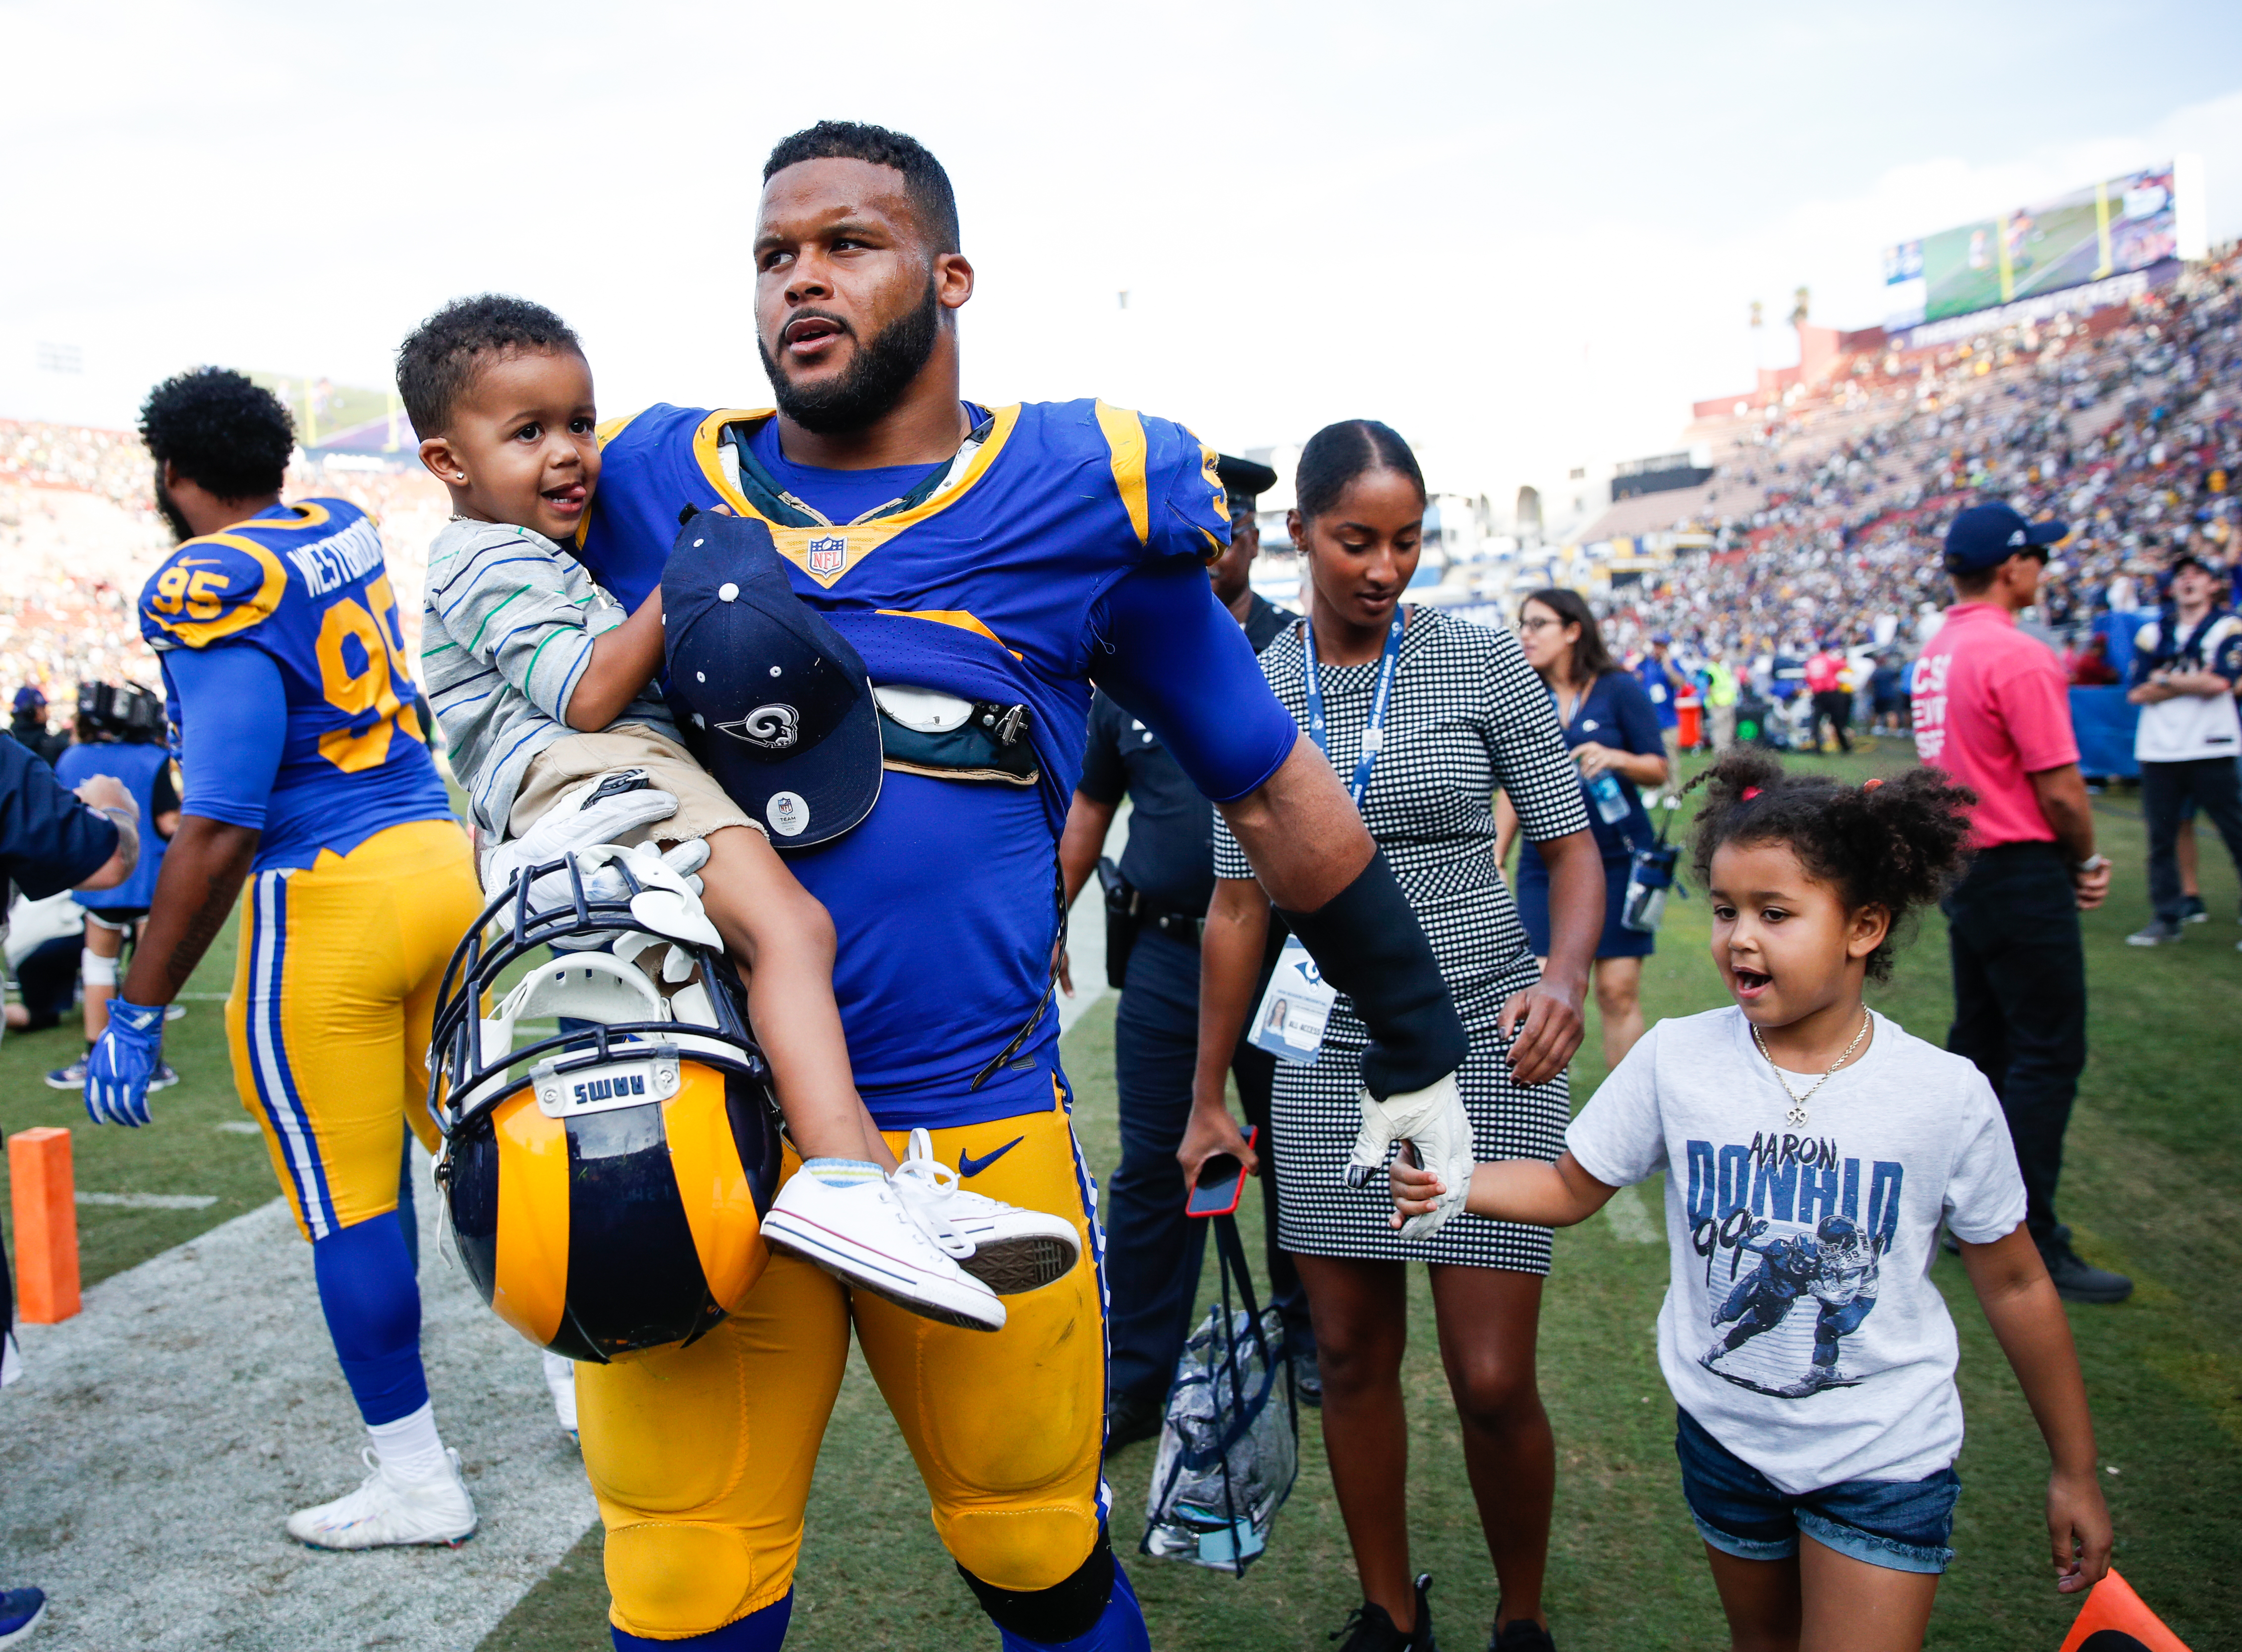 Aaron Donald 285 Pounds Of Dynamite Is Nfl S Ultimate Outlier In An Offense Heavy Season The Washington Post